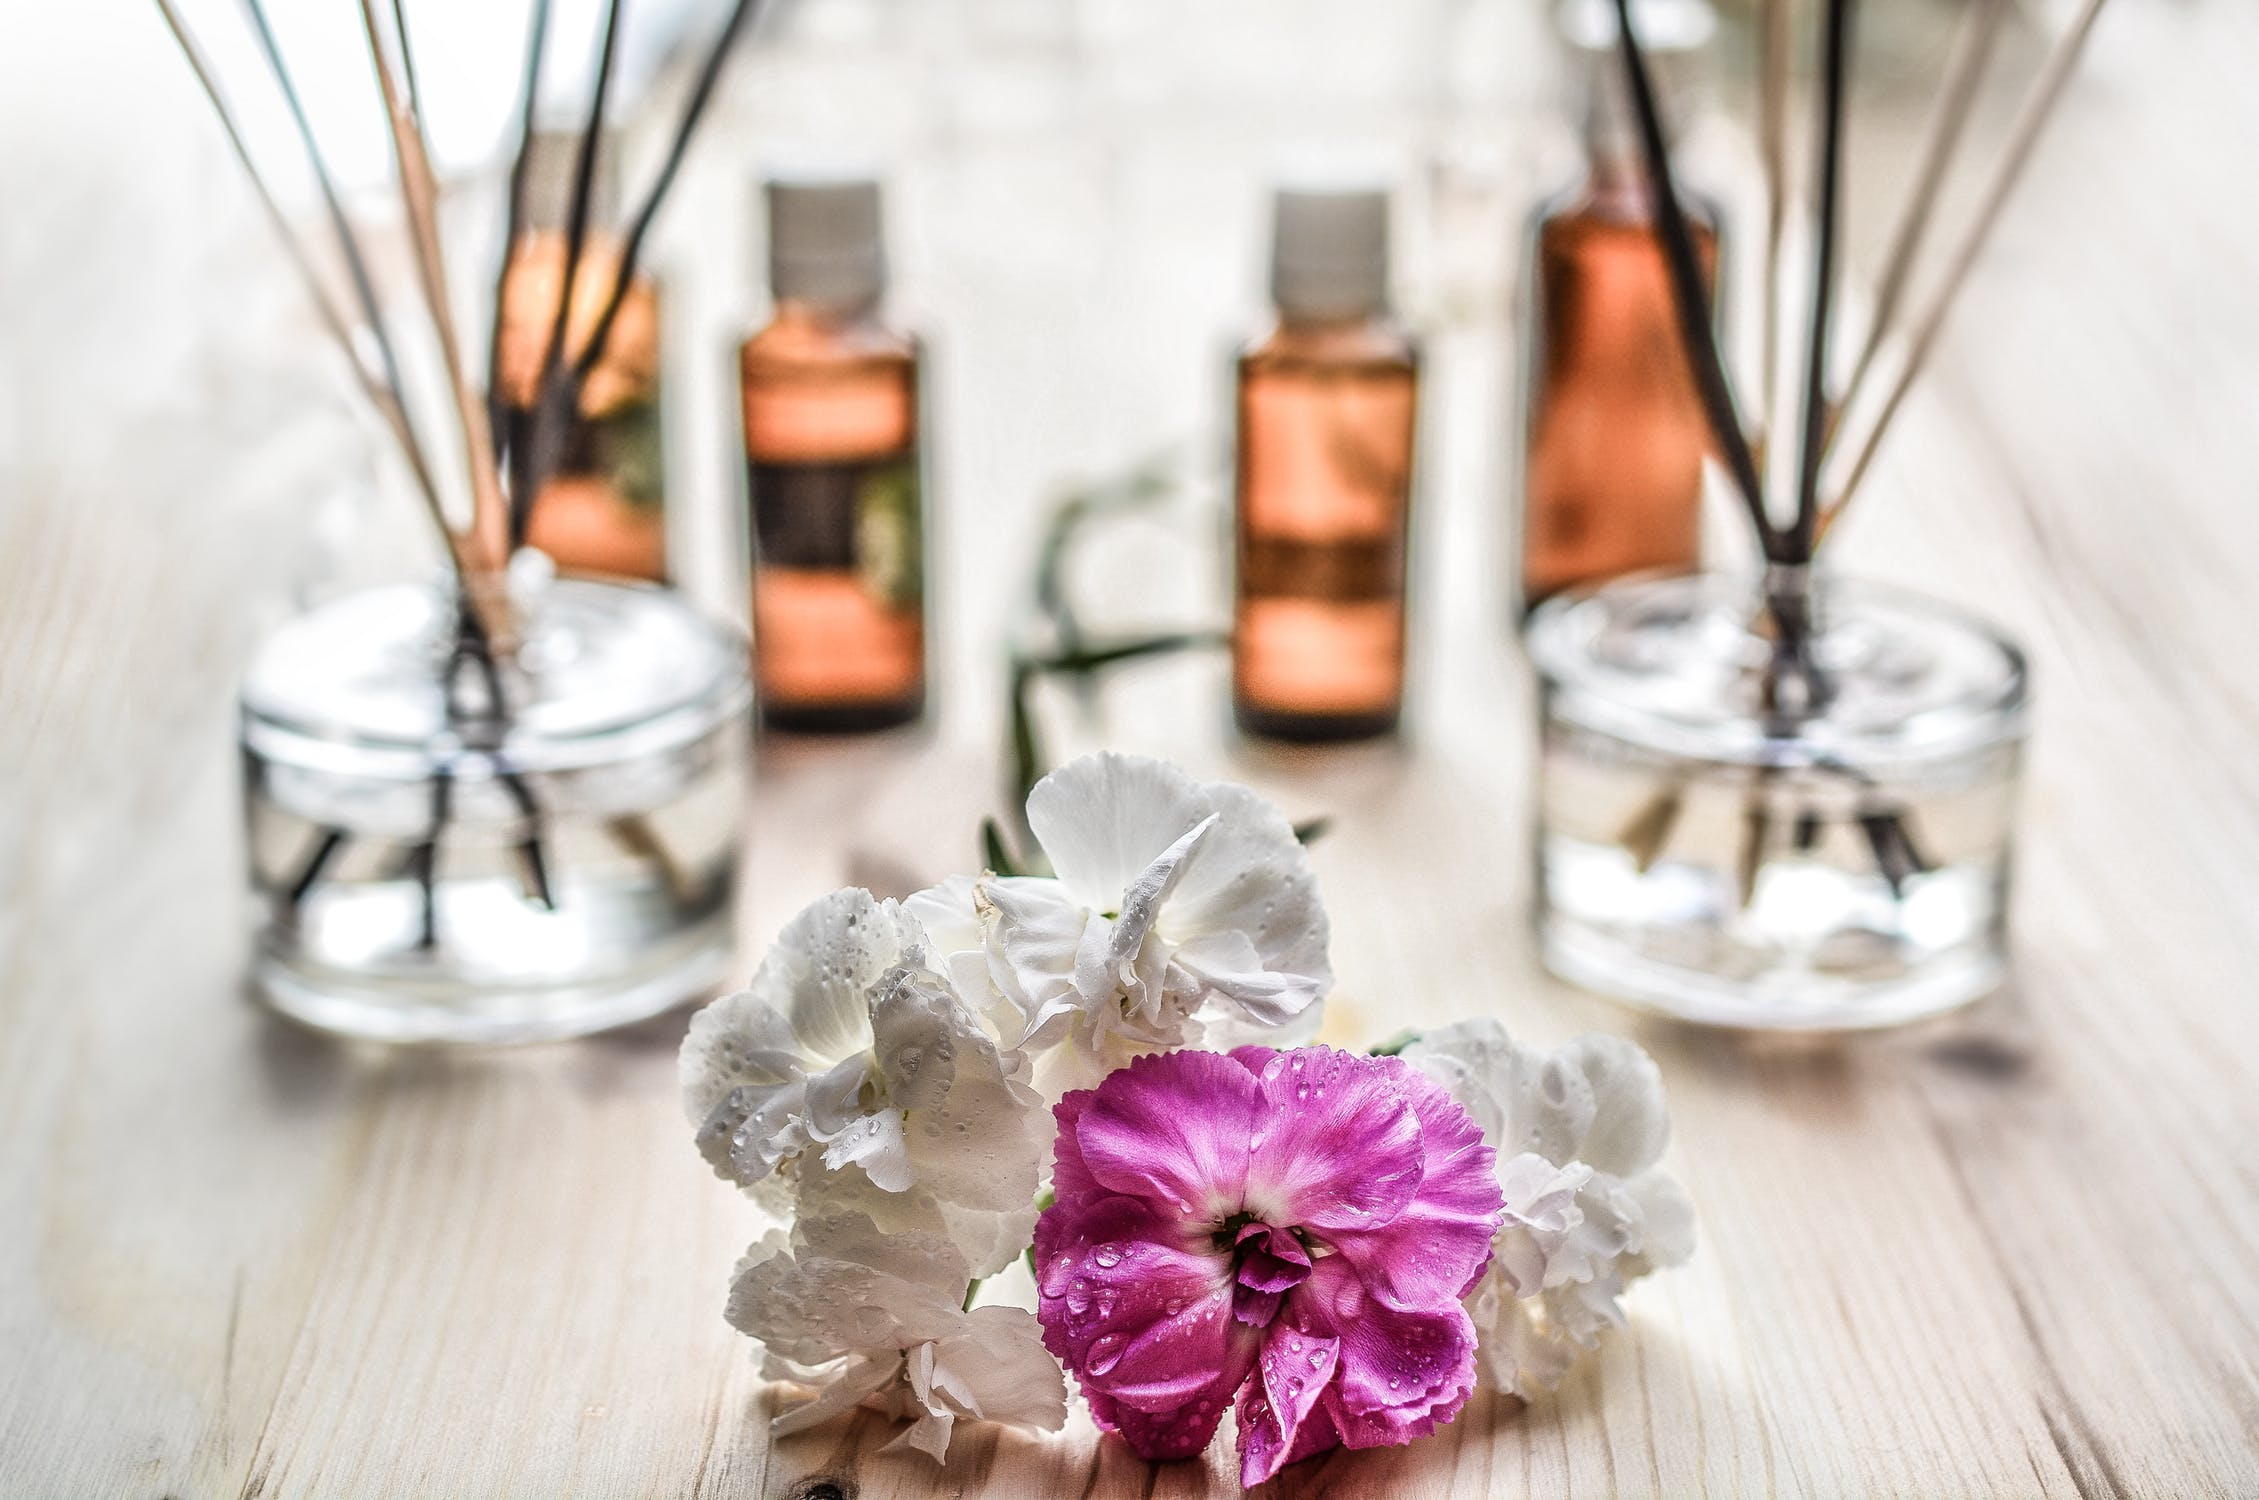 Freshen Up with Essential Oils